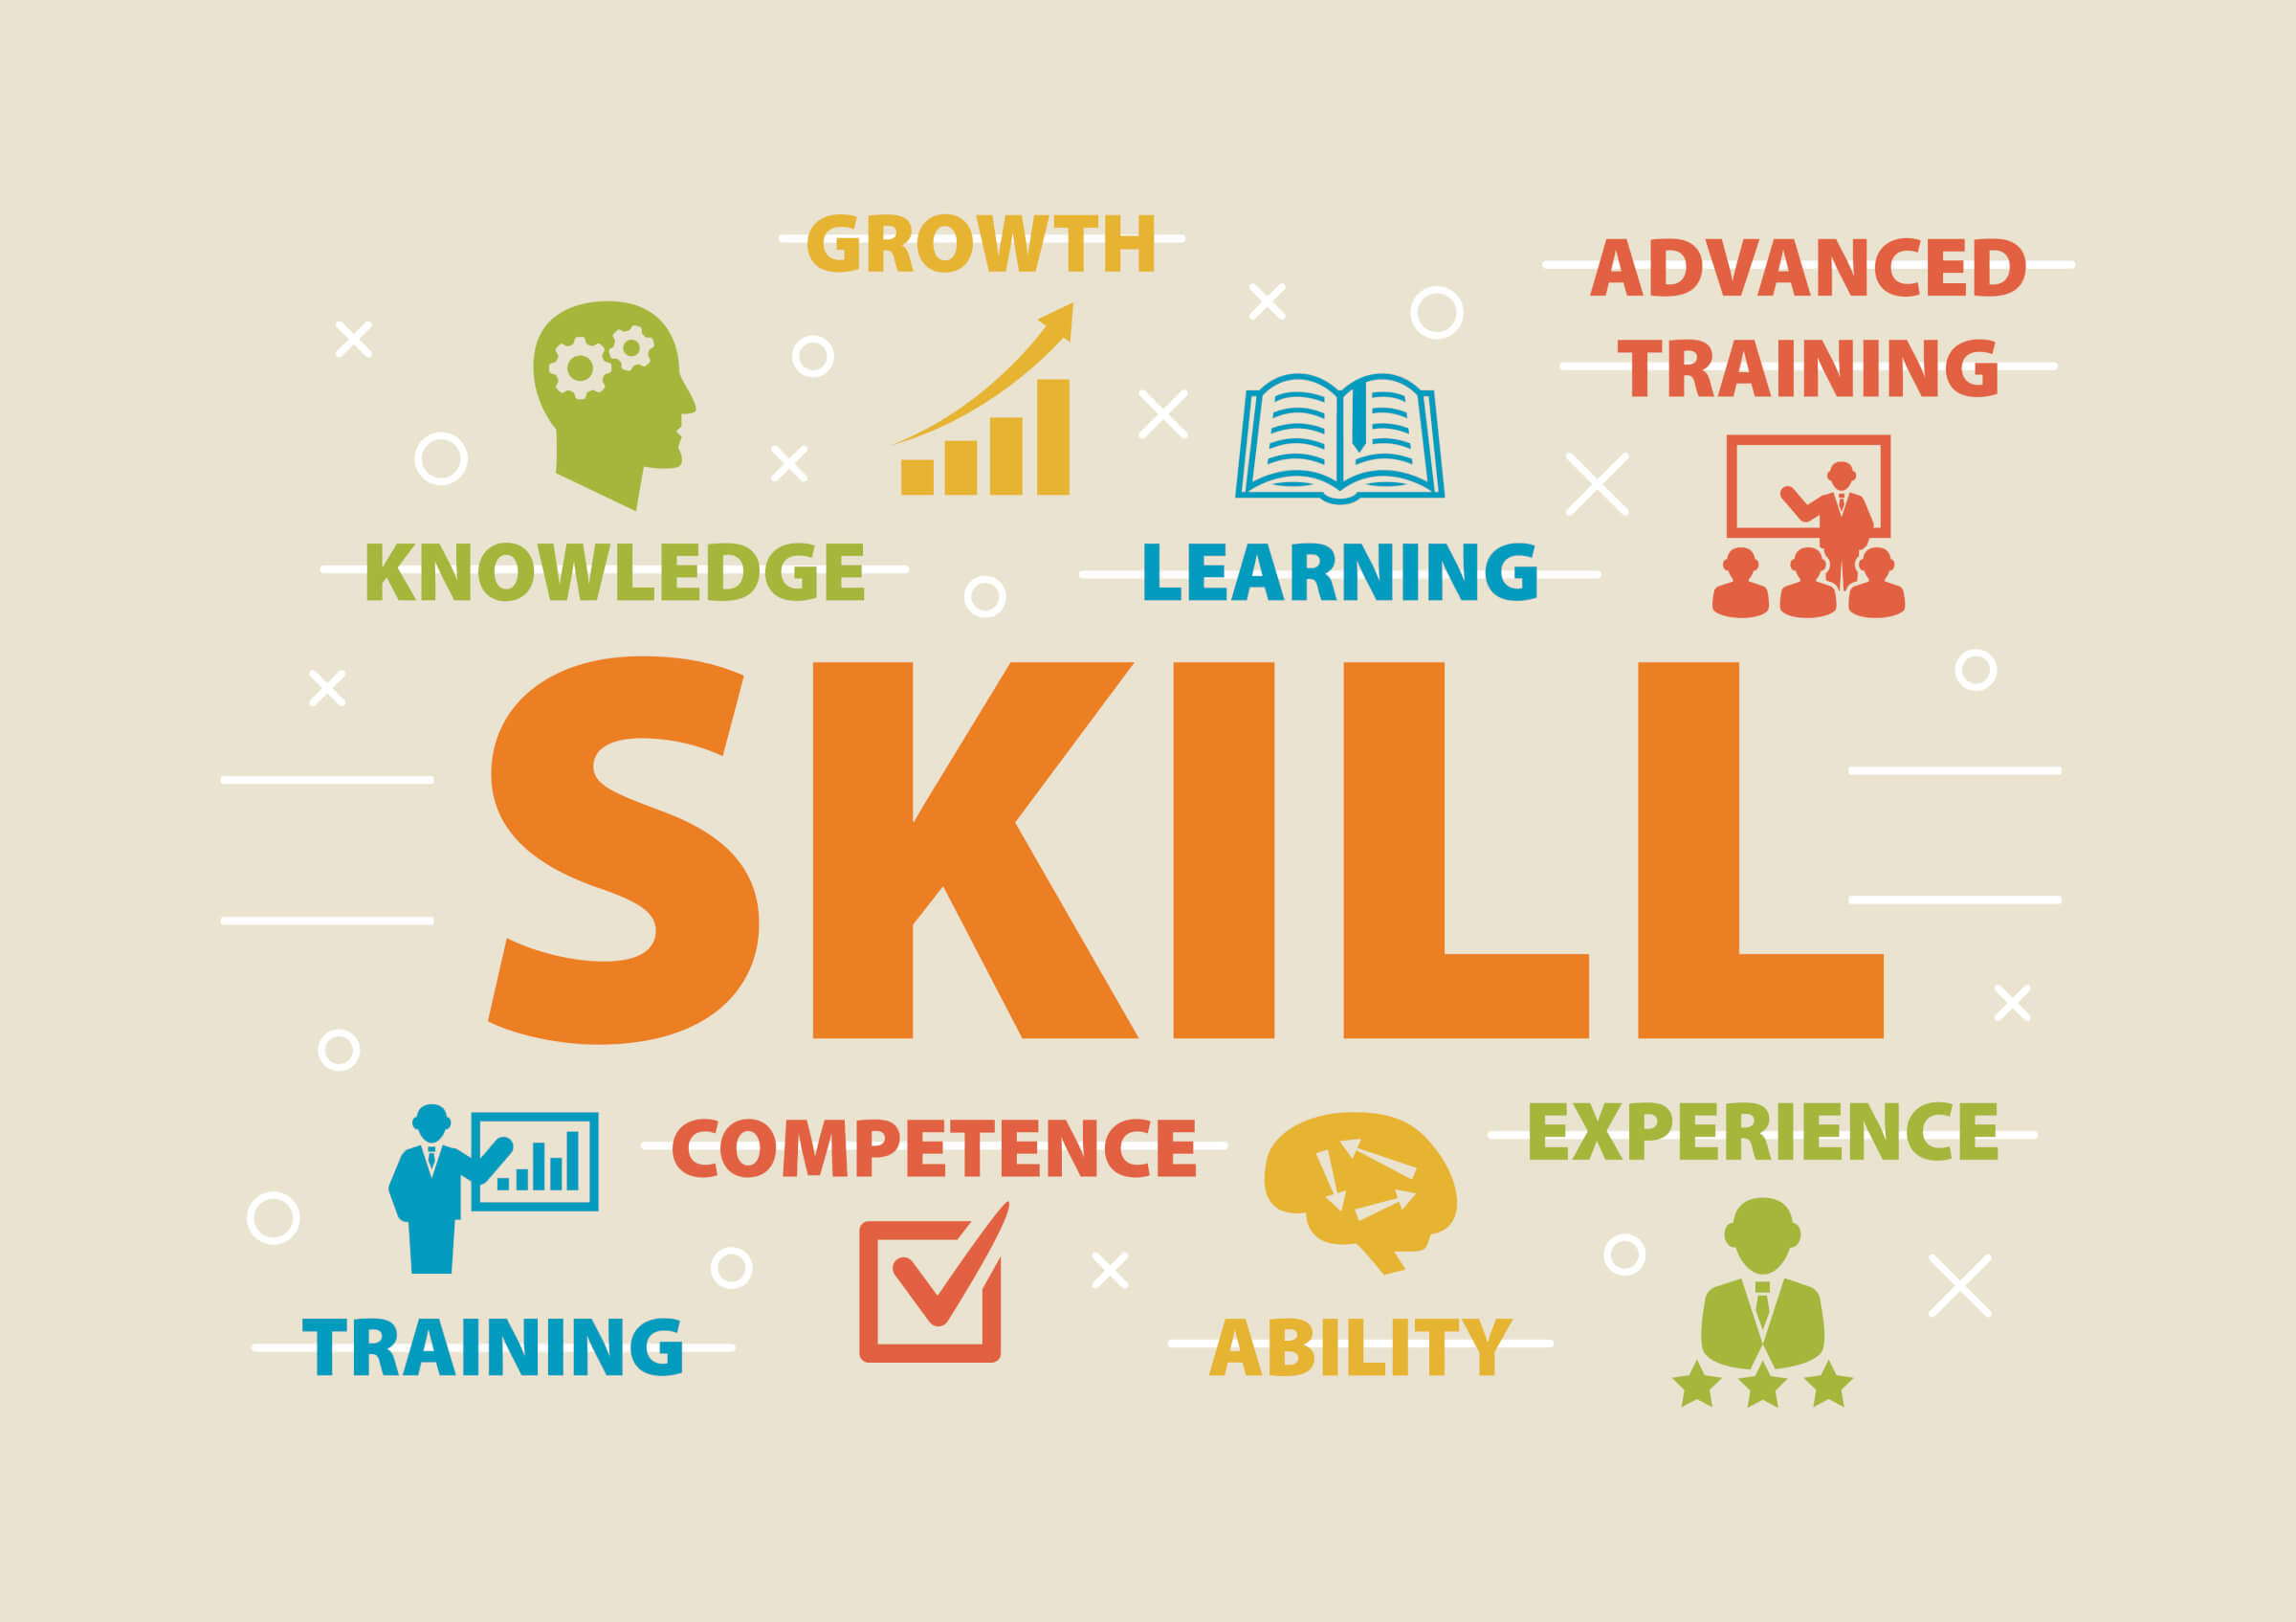 Matthew Hora wins award for timely 'Beyond the Skills Gap' - The Lifelong  Learner